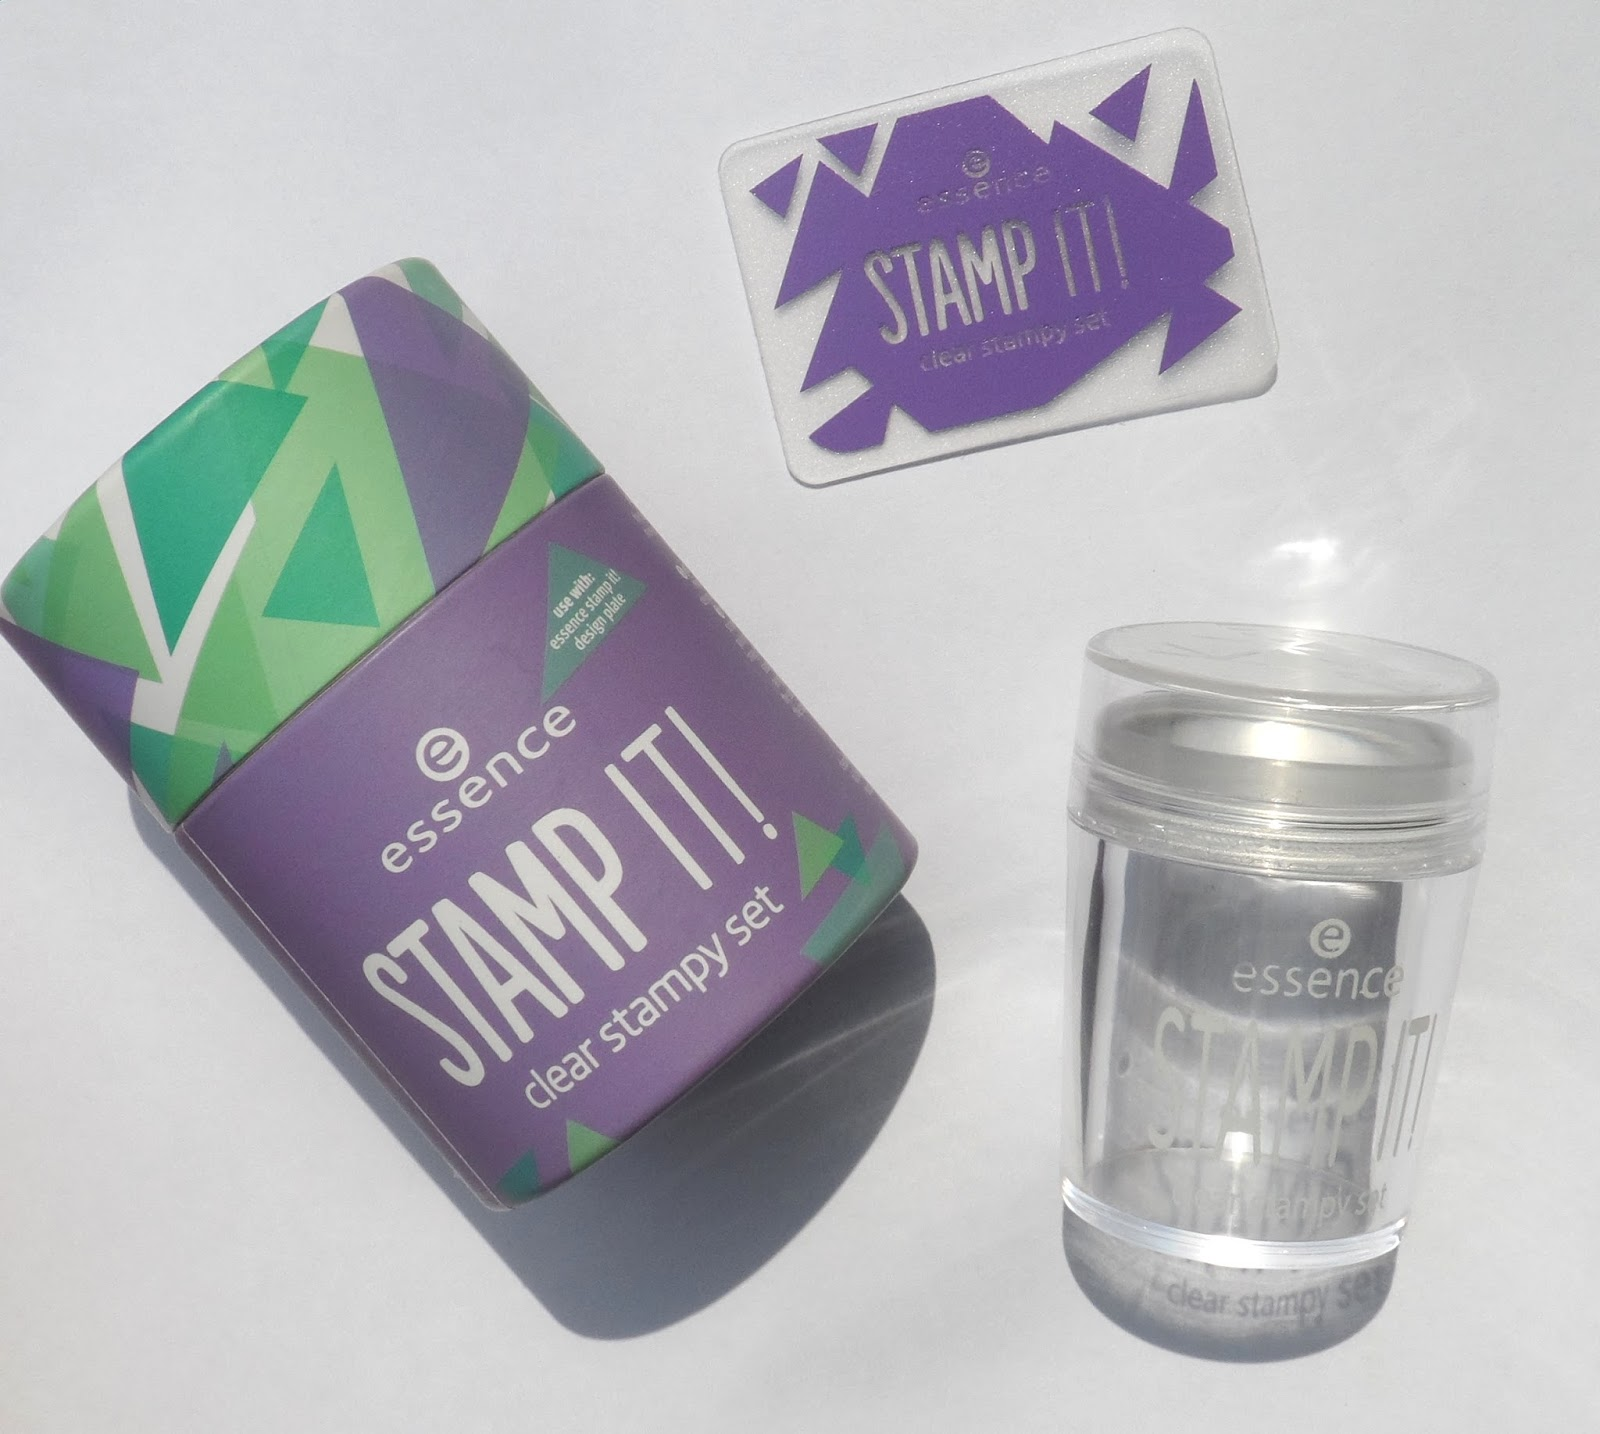 Review Essence Stamp It Clear Stampy Set